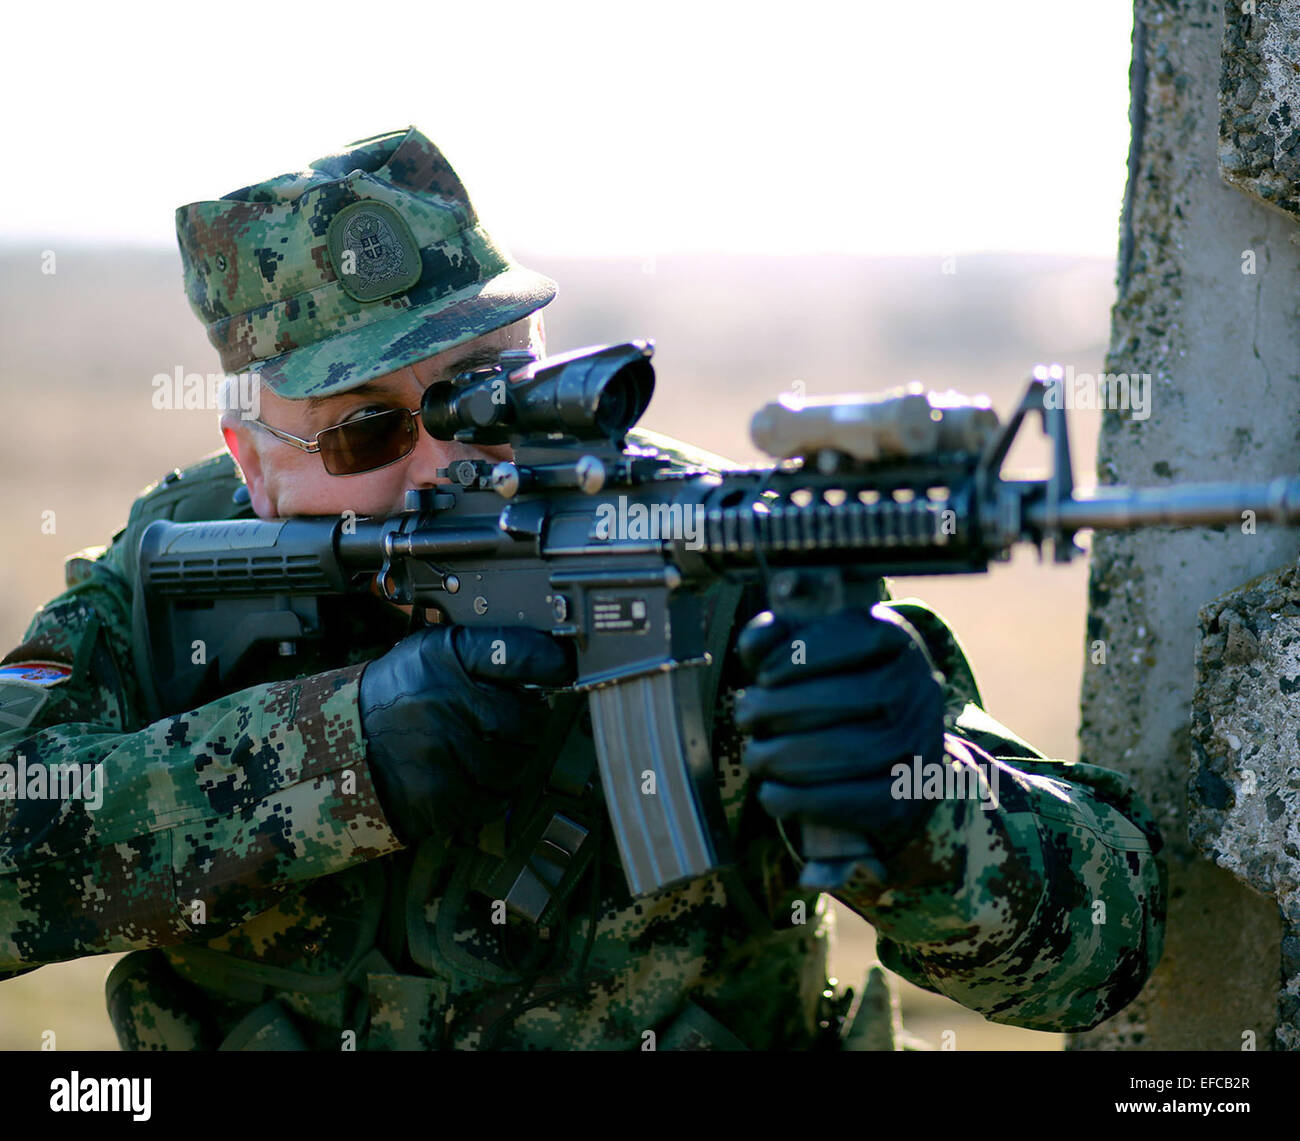 A Serbian Army soldier during joint training in the urbanized terrain course with the U.S. Marines January 17, 2015 - Stock Image